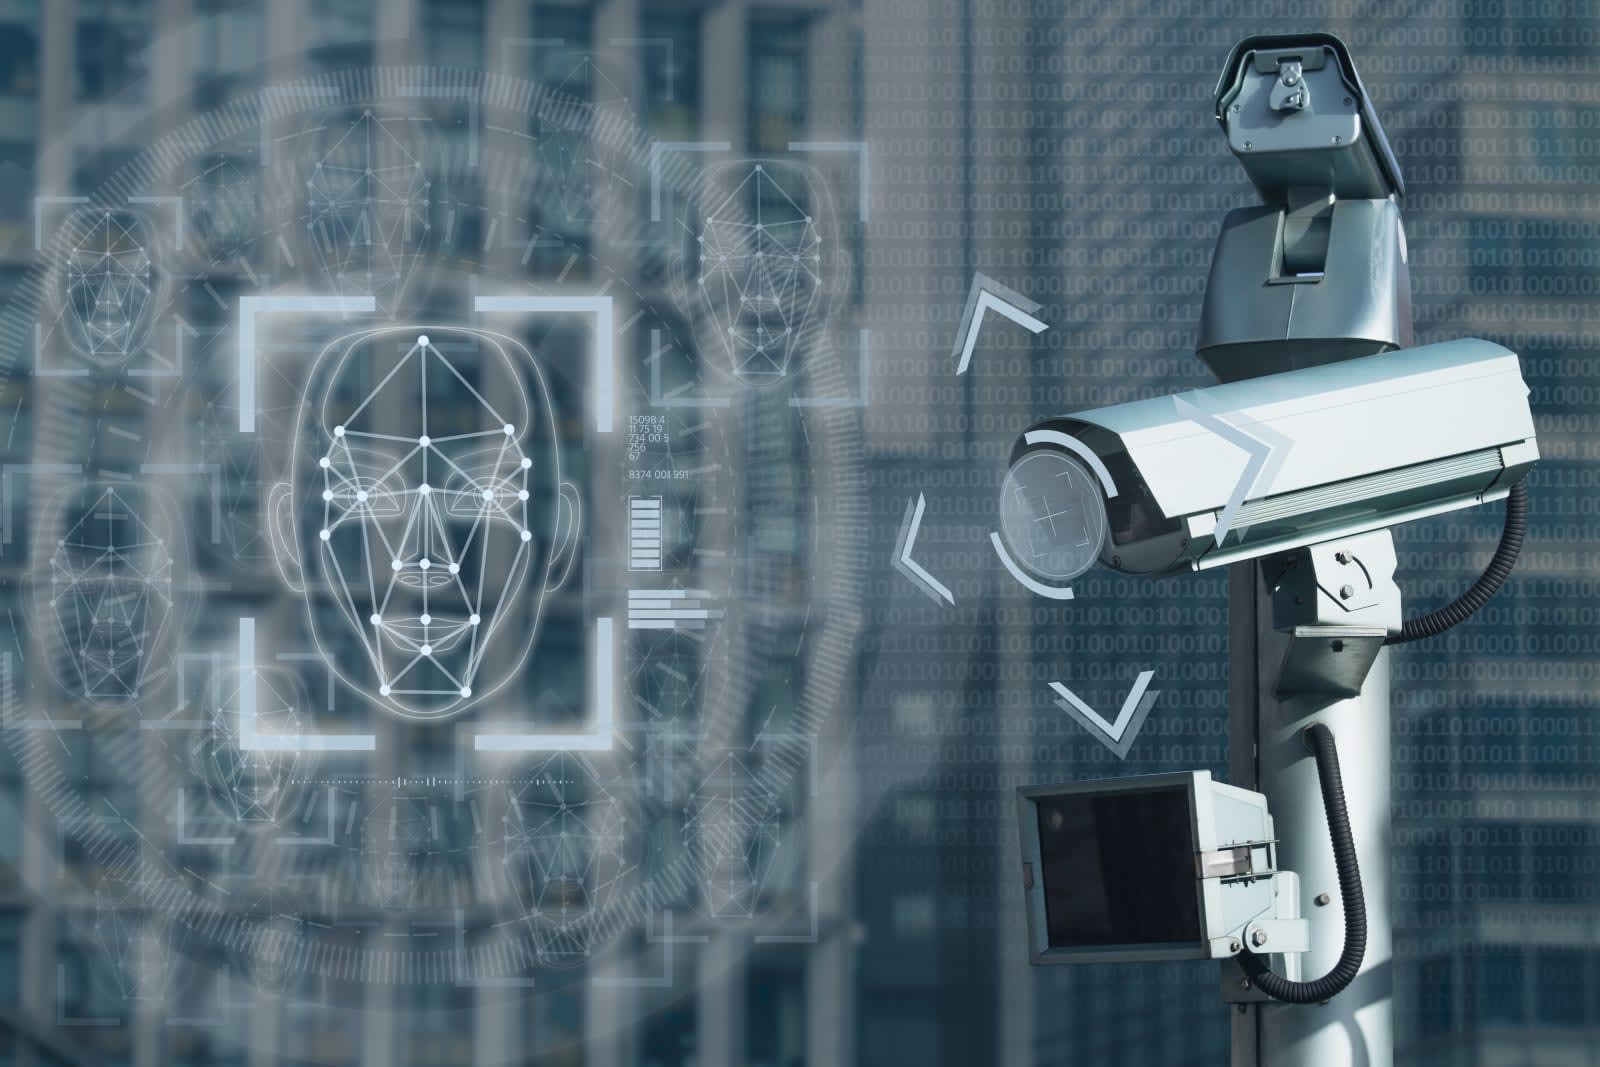 London will use live facial recognition cameras to police the city…